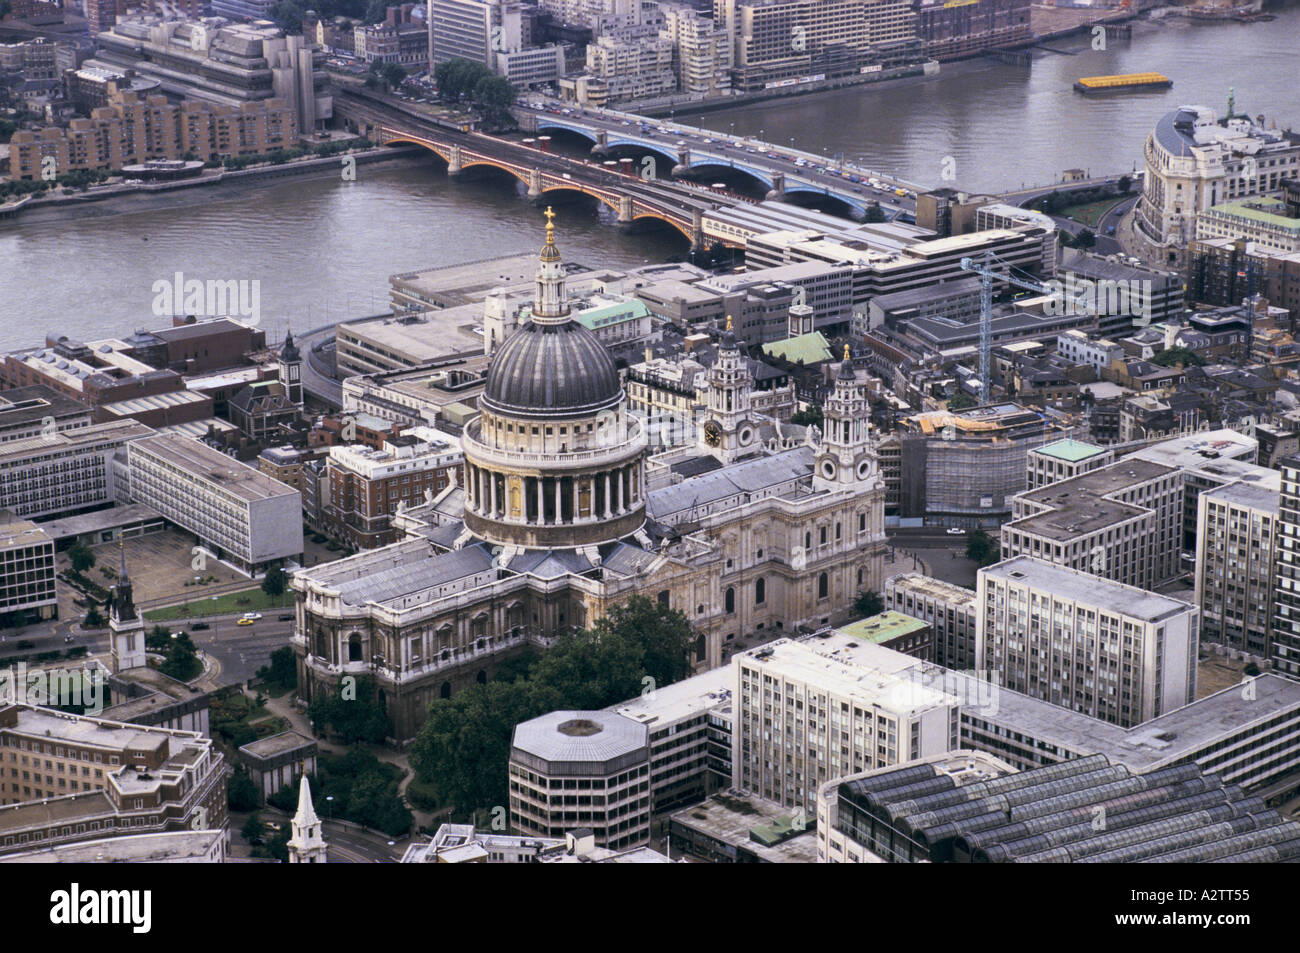 aerial view of St Pauls cathedral and the river Thames - Stock Image